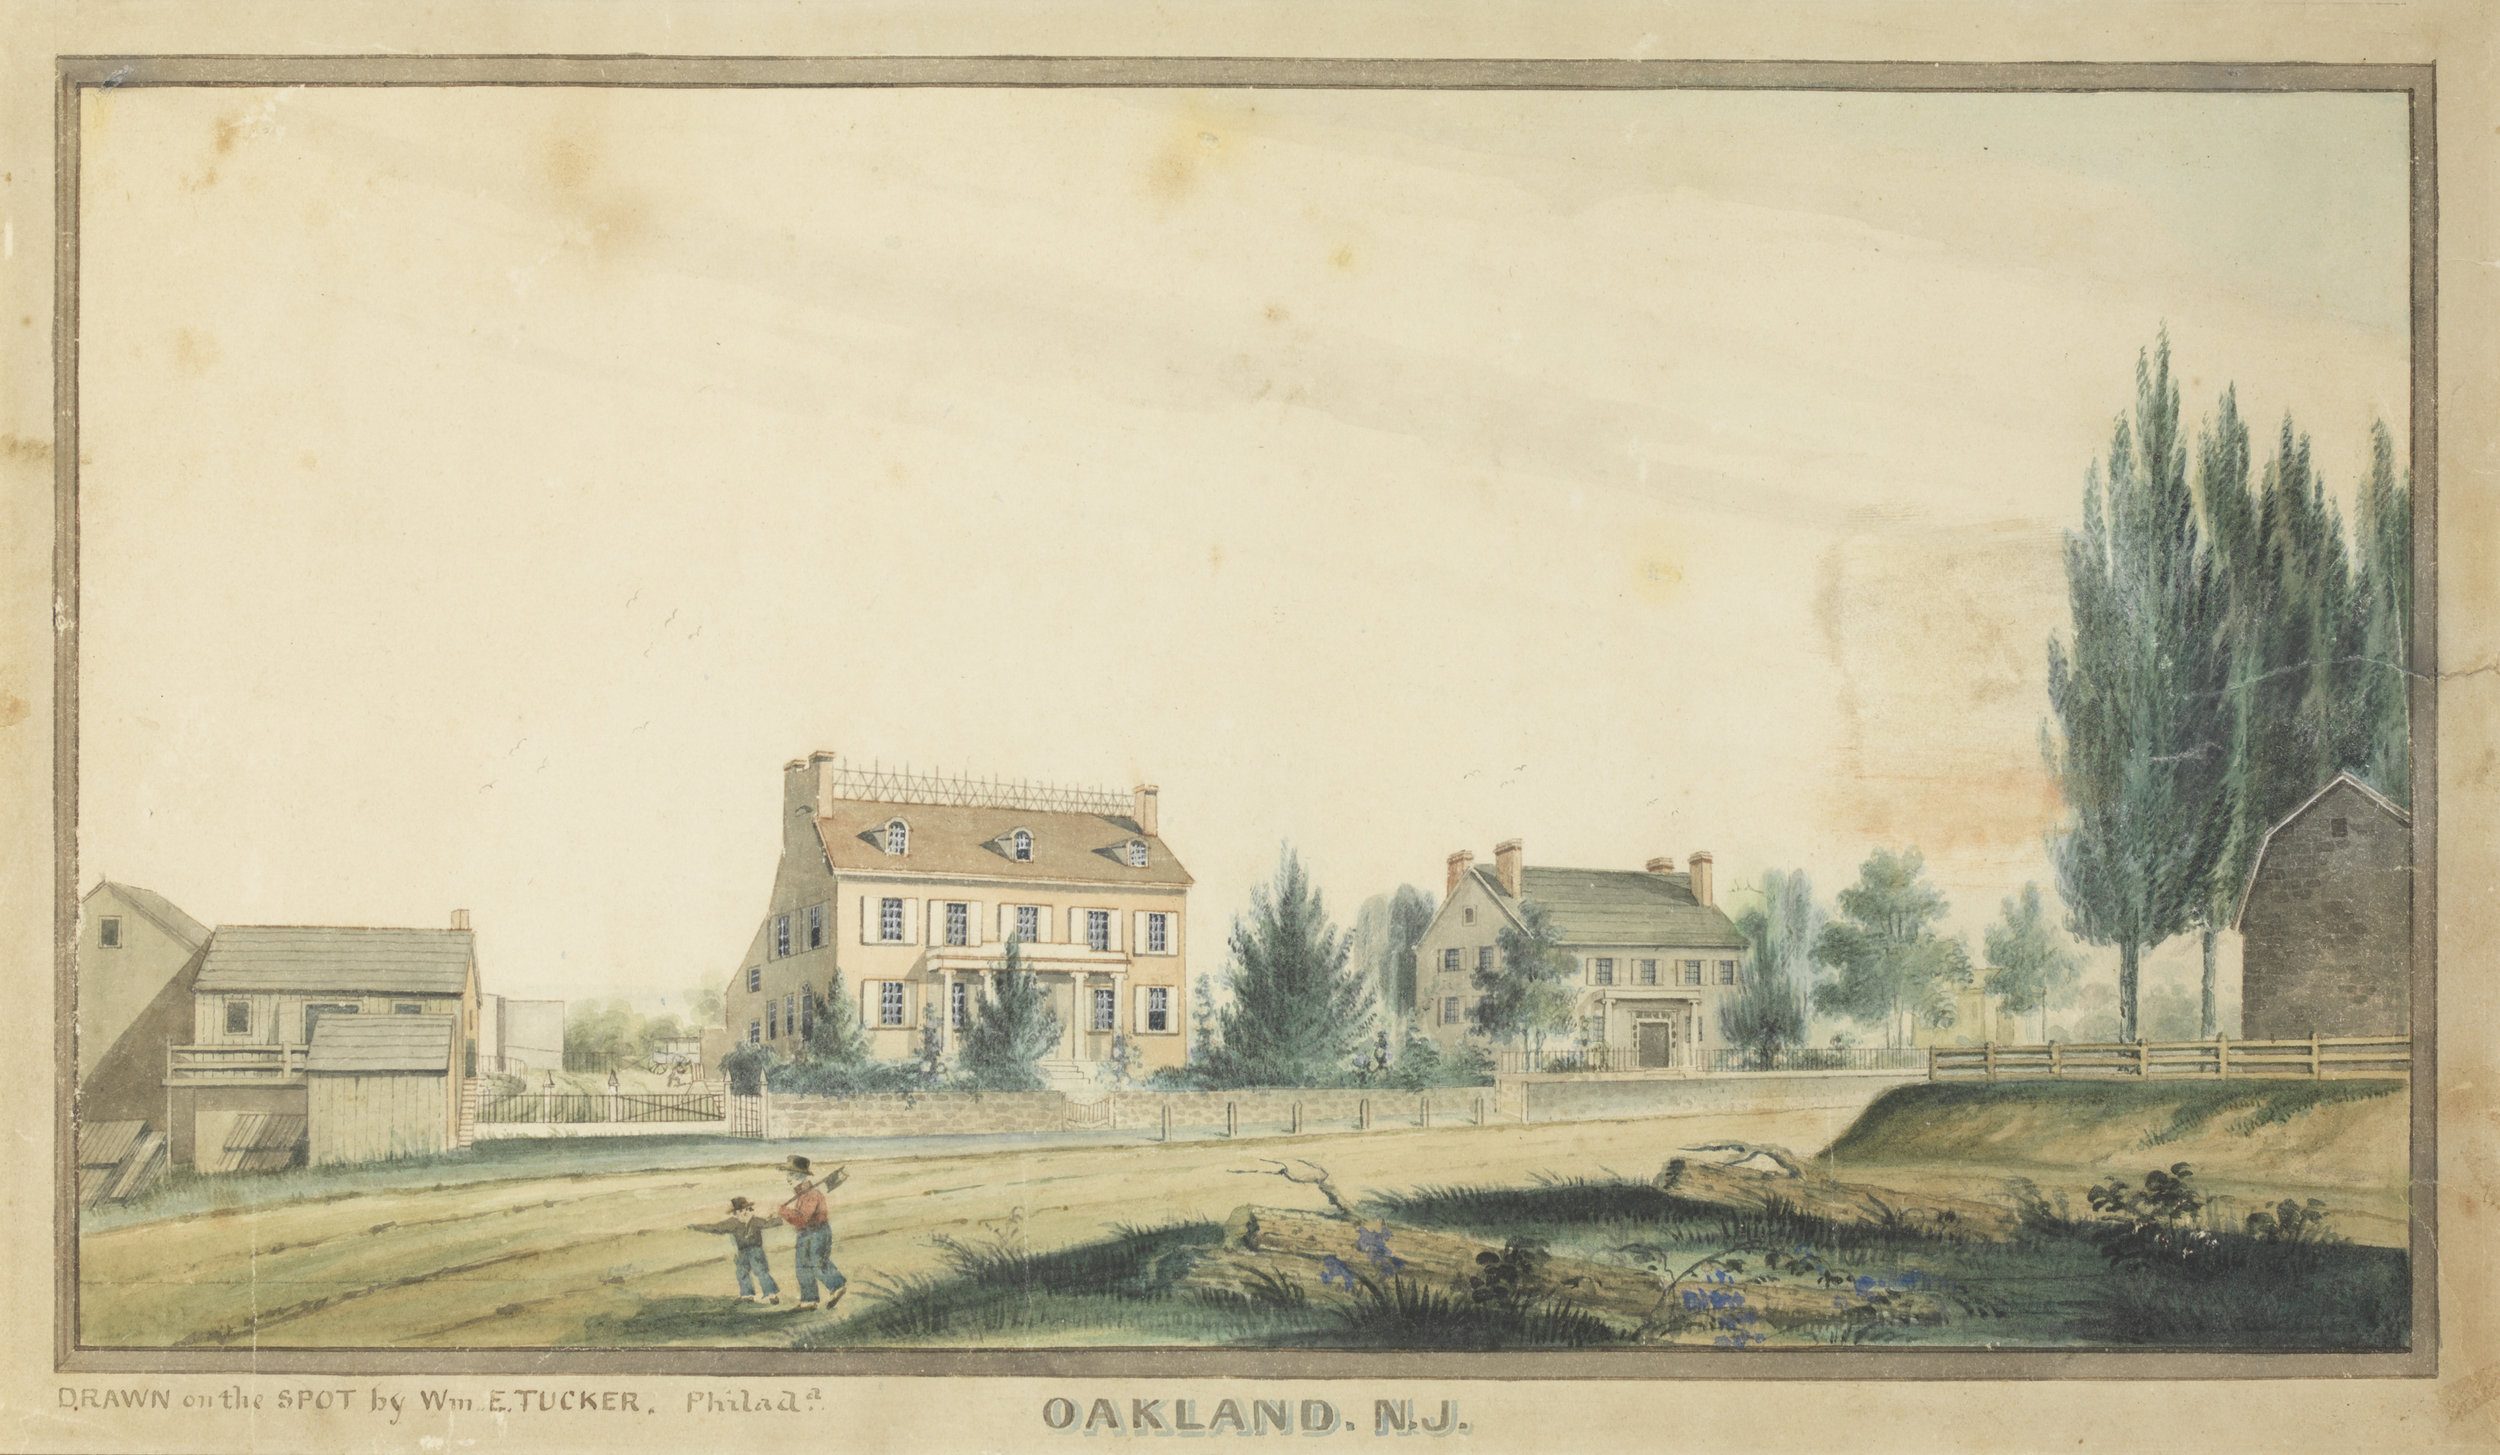 "Oakland, N.J. Between 1836 and 1848 ARTIST William E. Tucker (signed lower left, ""Drawn on the spot by Wm. E. Tucker, Philada.""). Pen and ink, and watercolor, on paper. 8 x 13½ in._80%2.jpg"